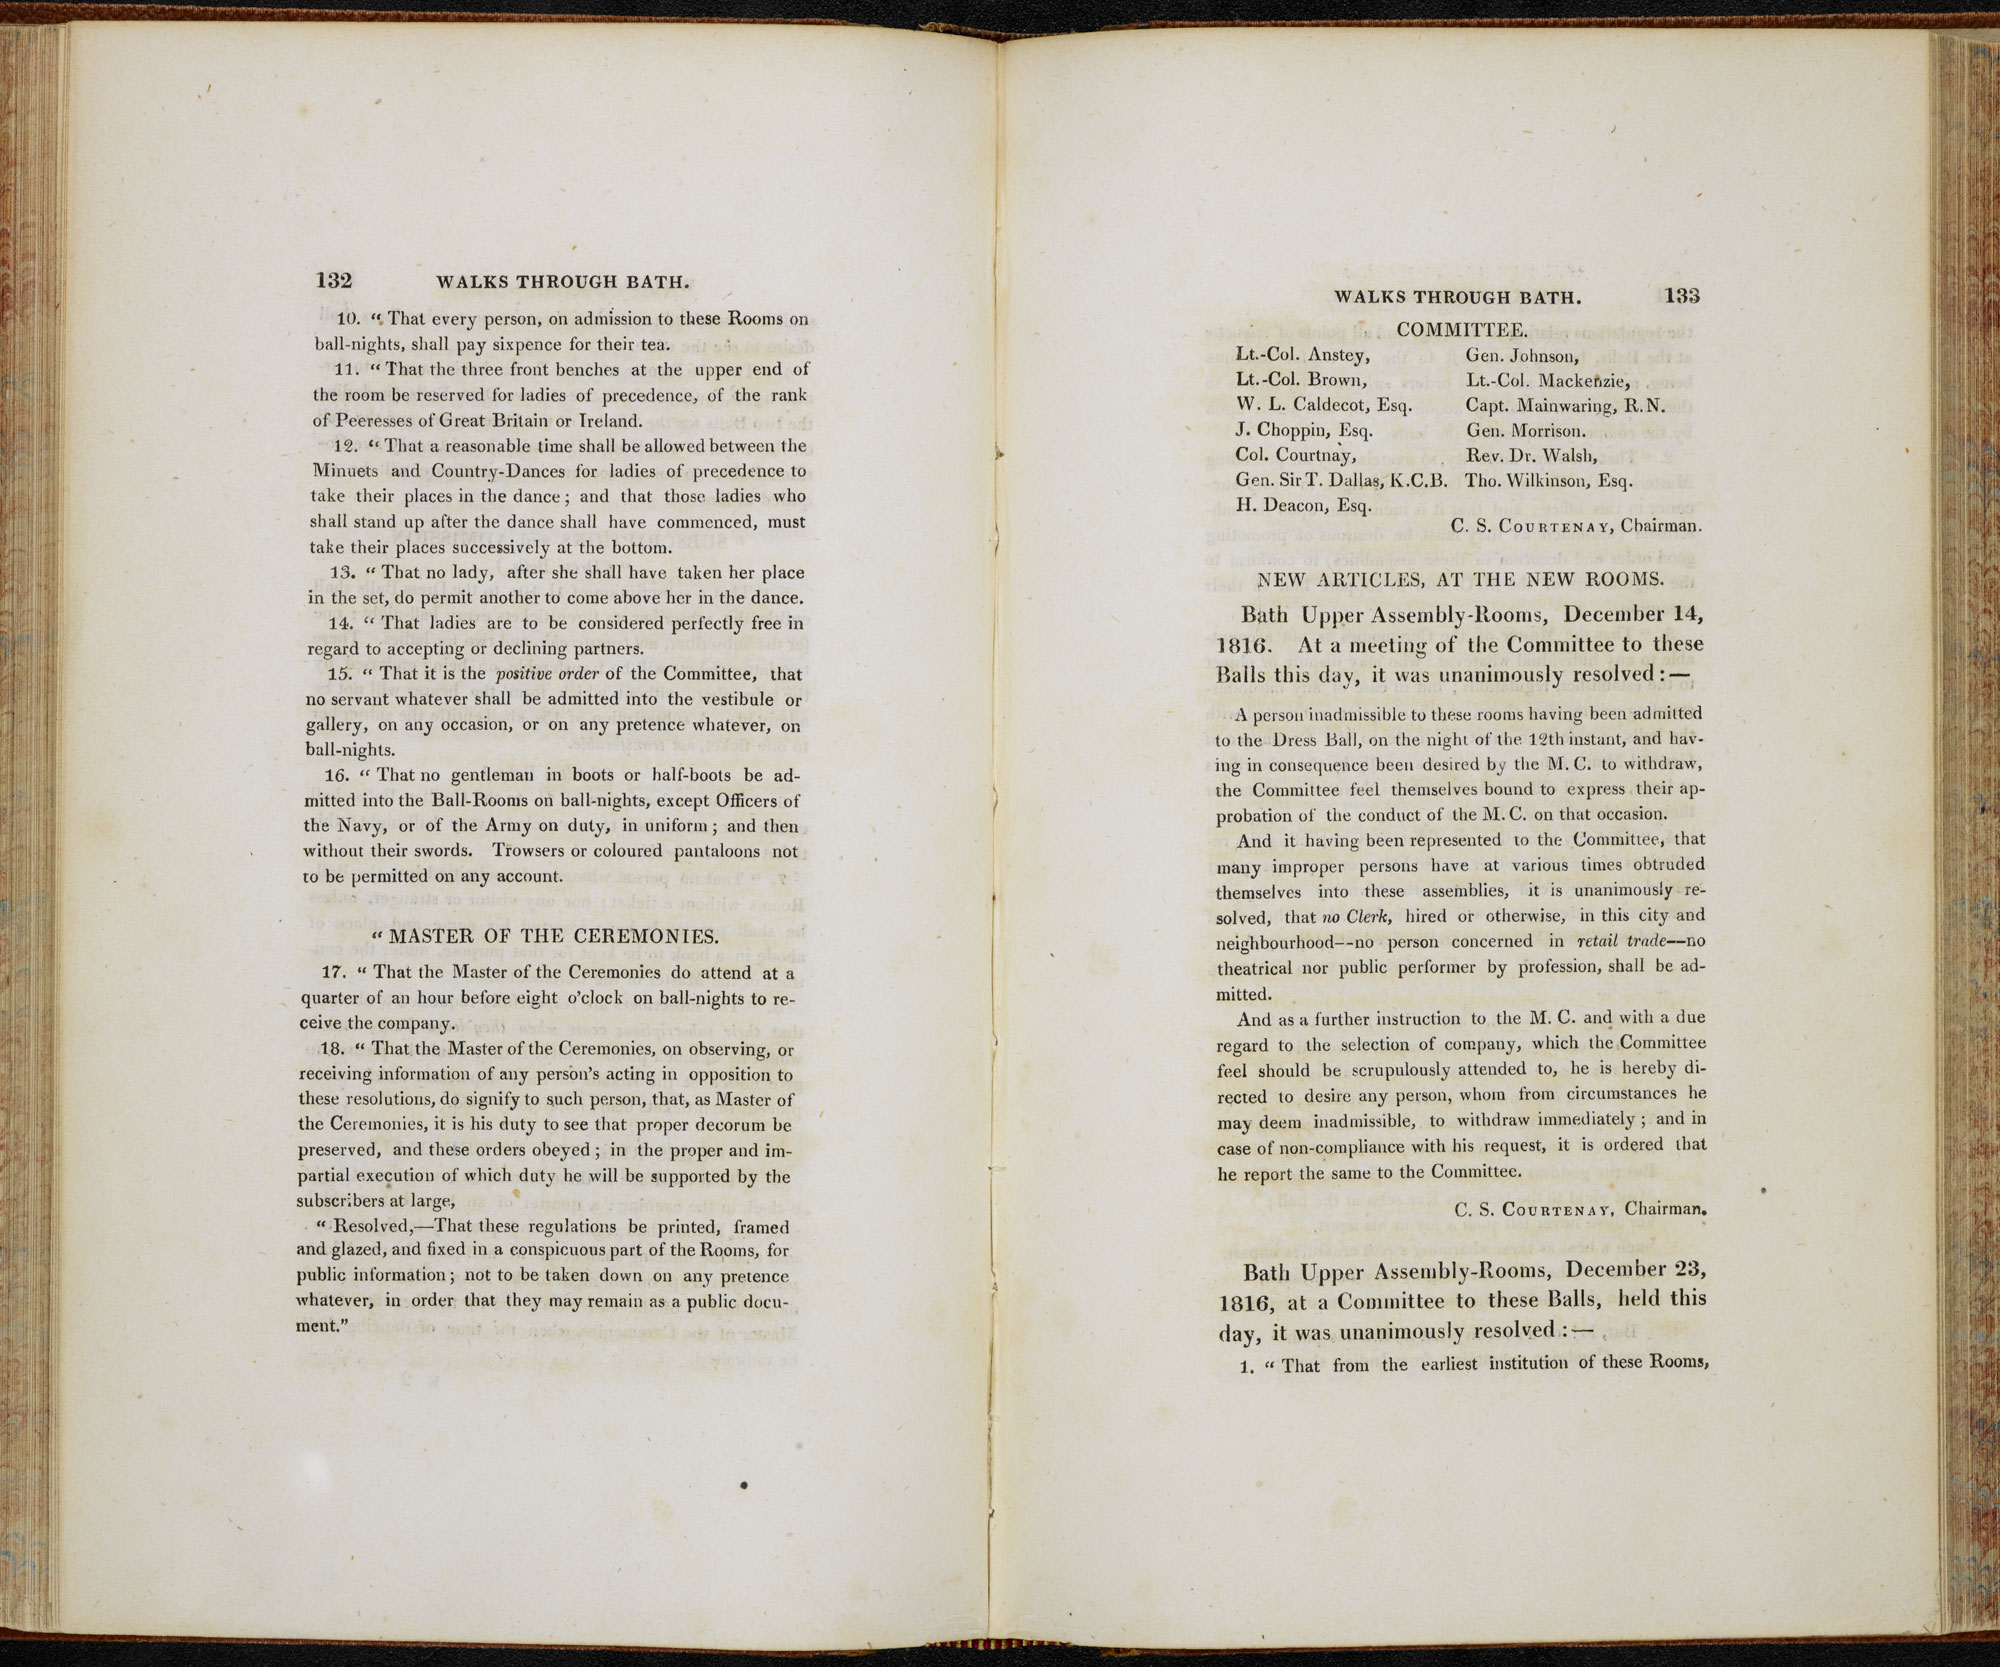 Walks Through Bath [page: 132-33]